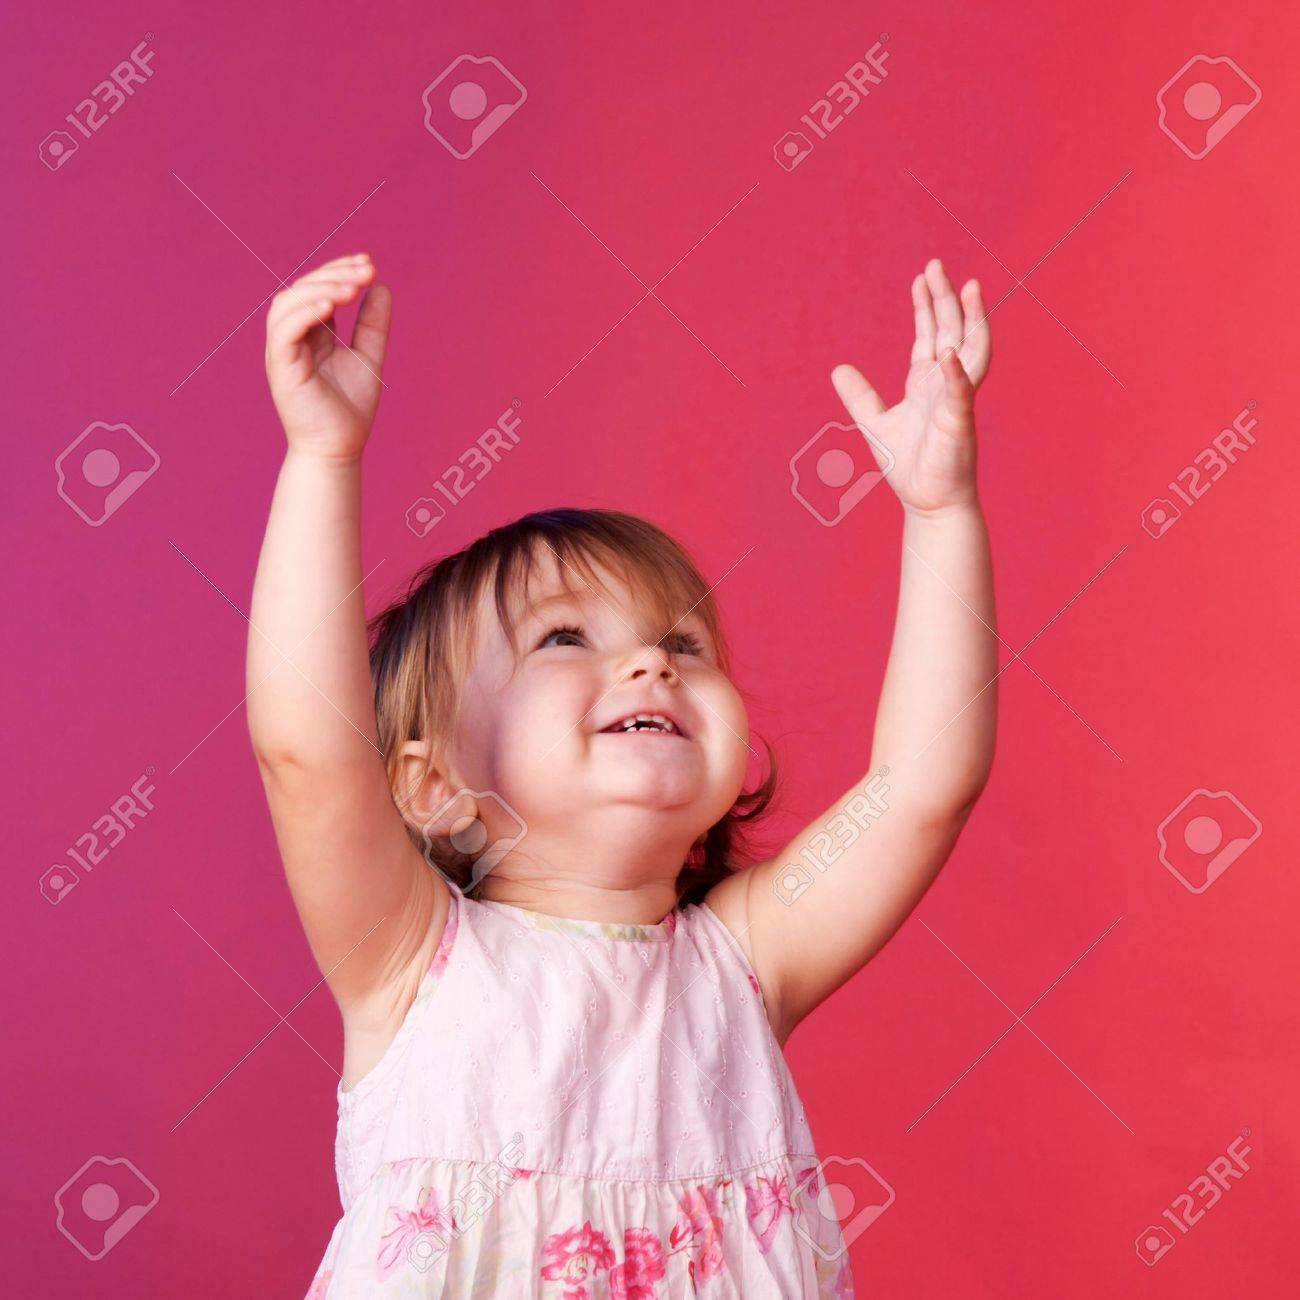 Baby catching something with his hands up. Happy face close up. Stock Photo - 17497765